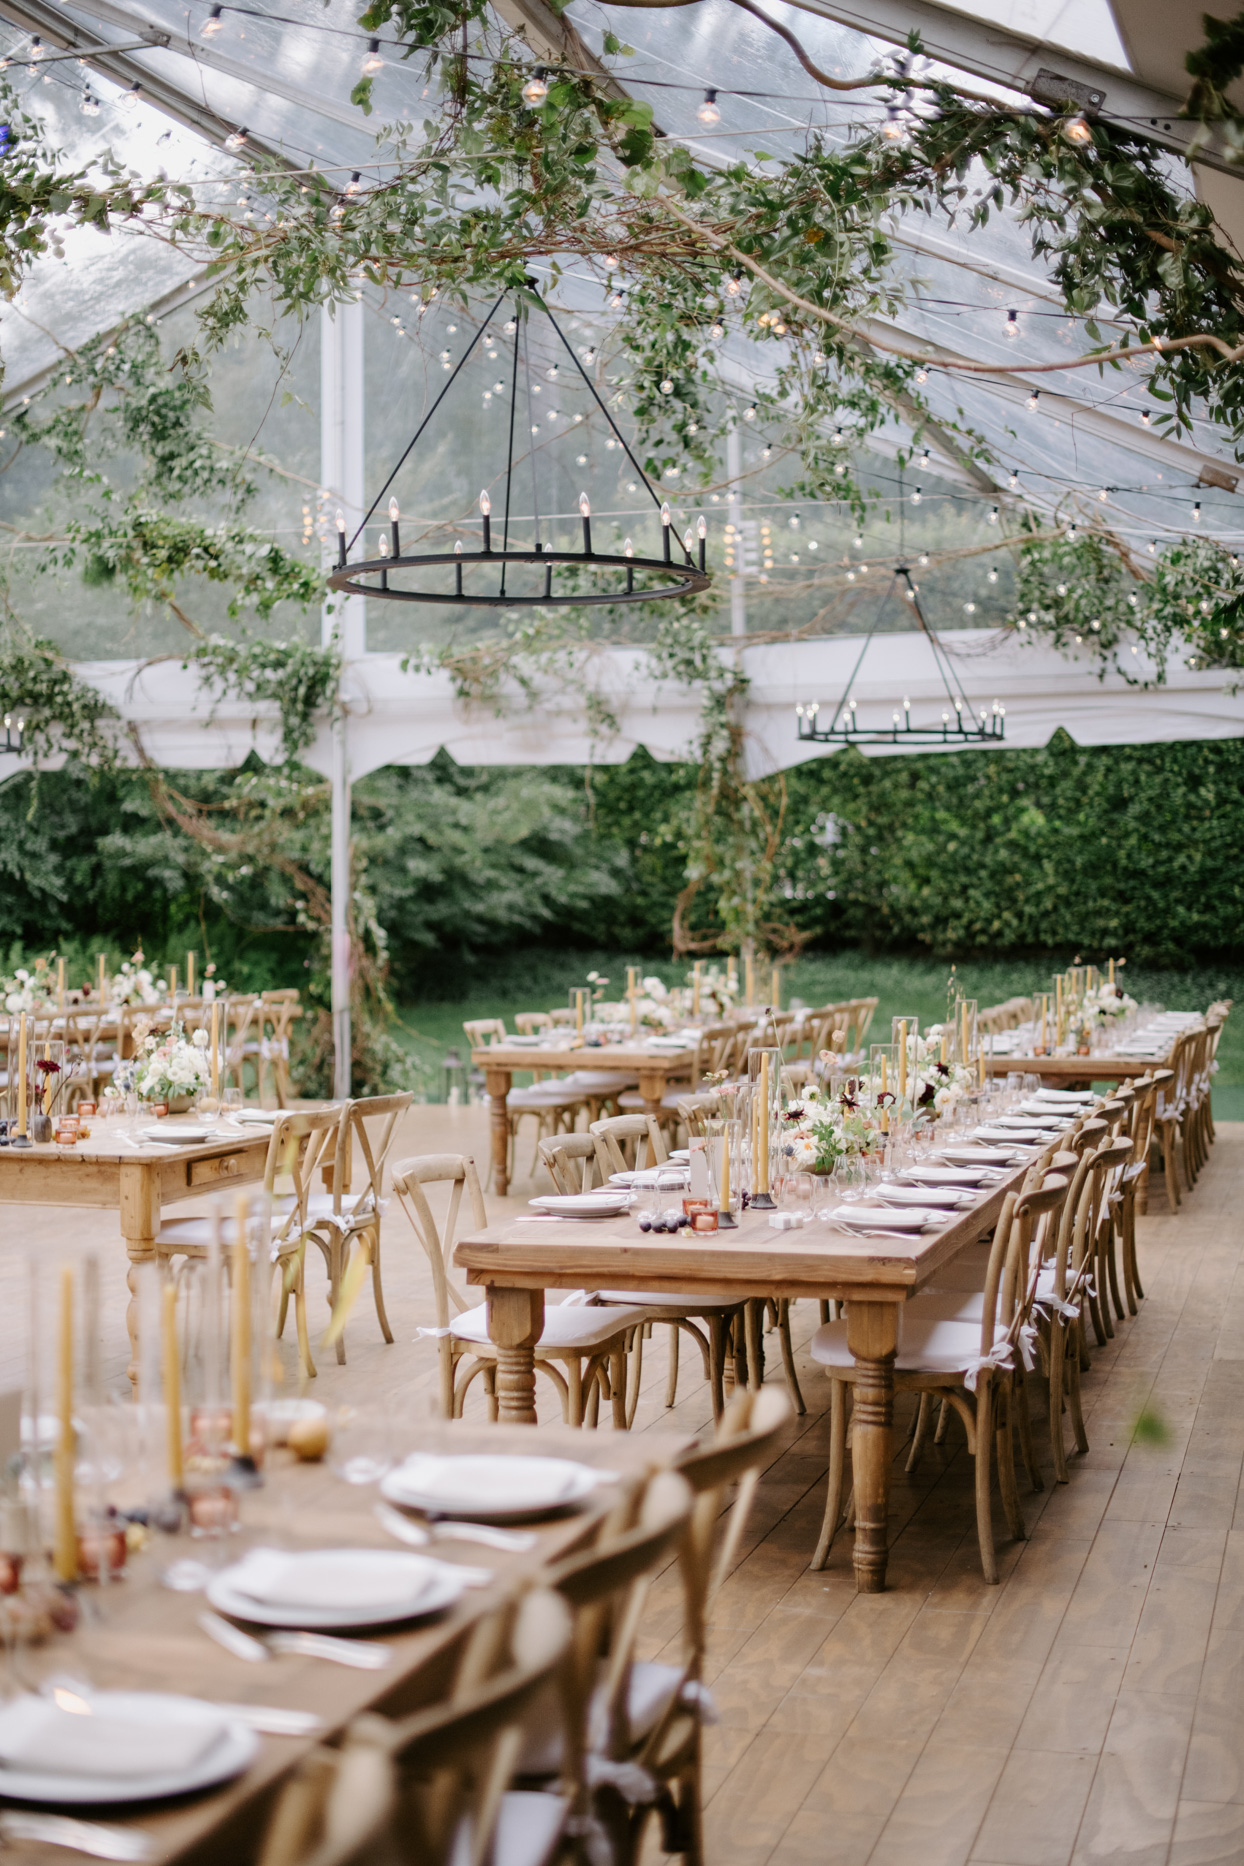 outdoor wedding reception in tent with wooden floor and tables